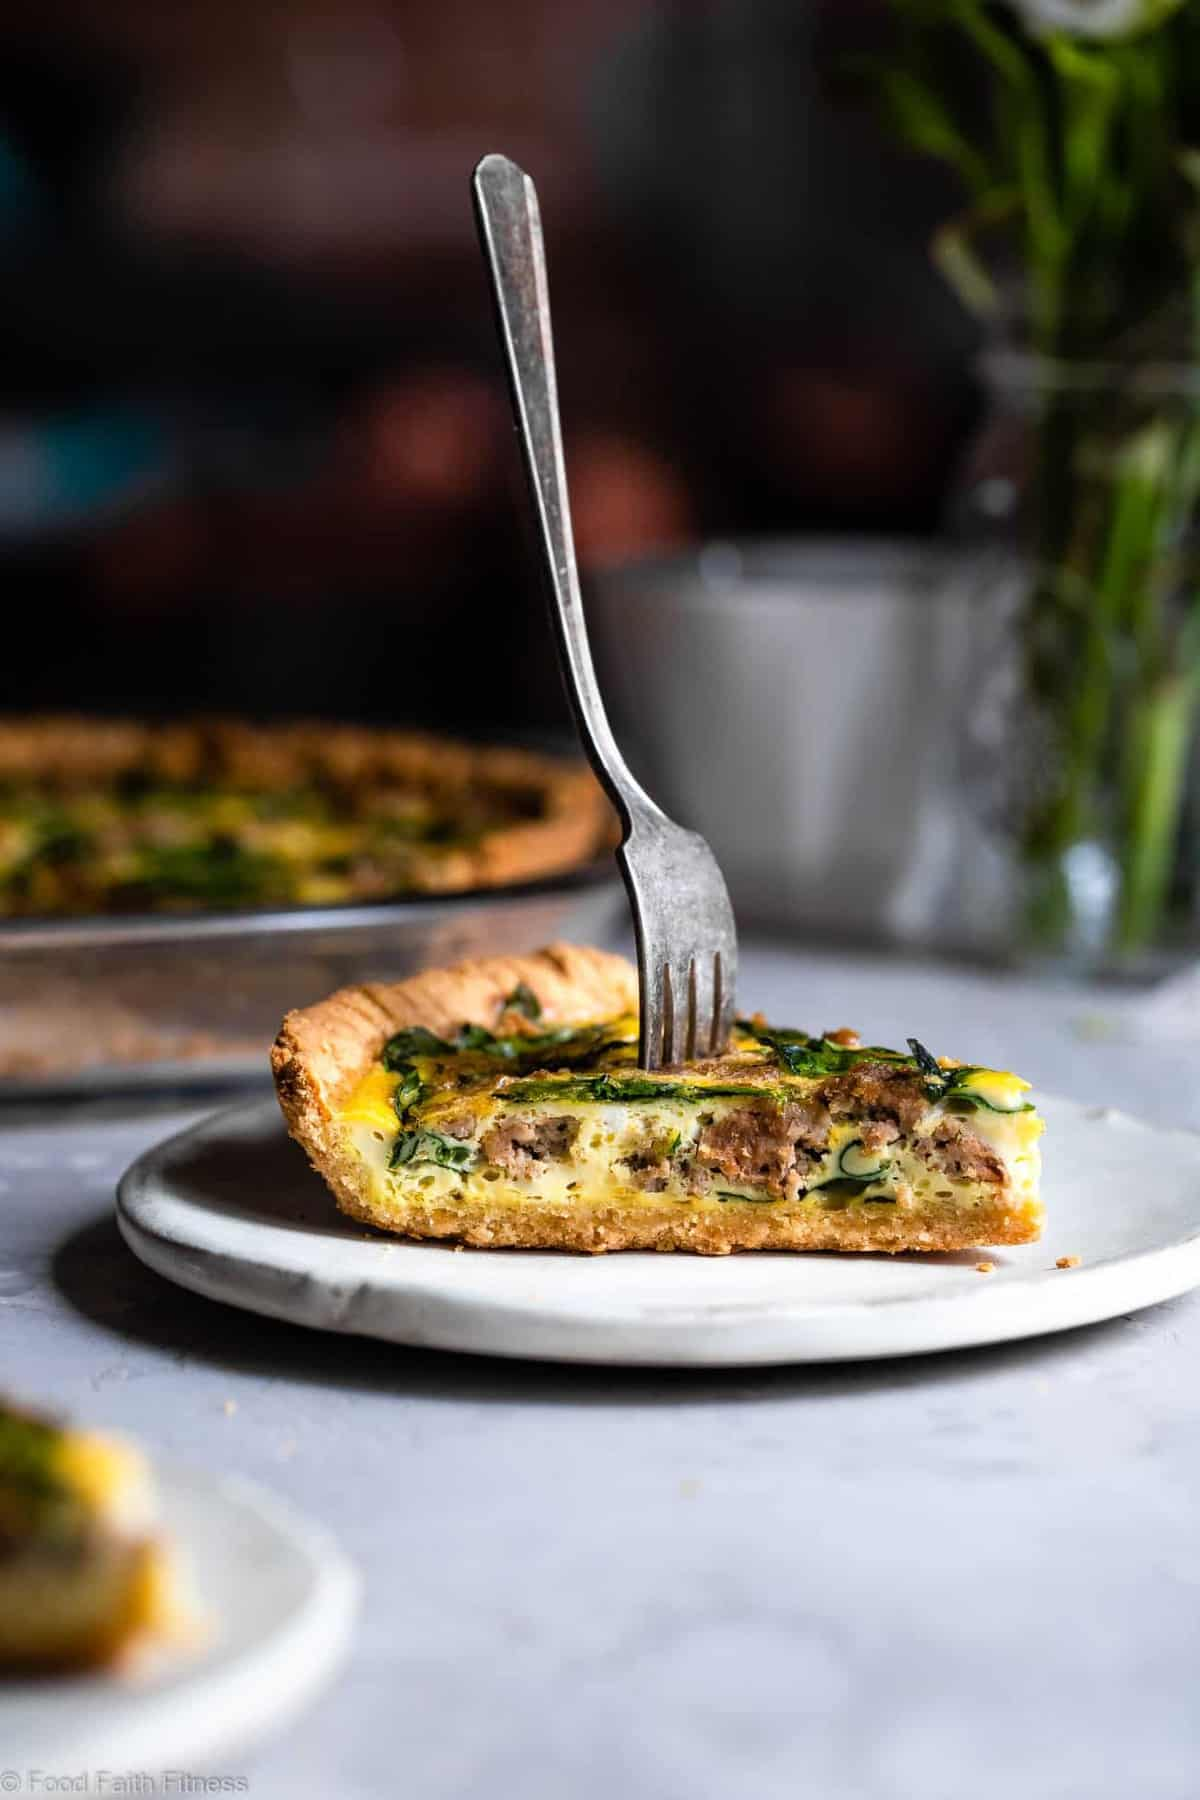 Gluten Free Low Carb Quiche -This EASY low carb, dairy free and paleoQuiche has a homemade, buttery, flaky Almond Flour Crust! Sausage, spinach and eggs make a high protein, filling breakfast! Great for meal prep! | #Foodfaithfitness | #Glutenfree #Lowcarb #Keto #paleo #dairyfree